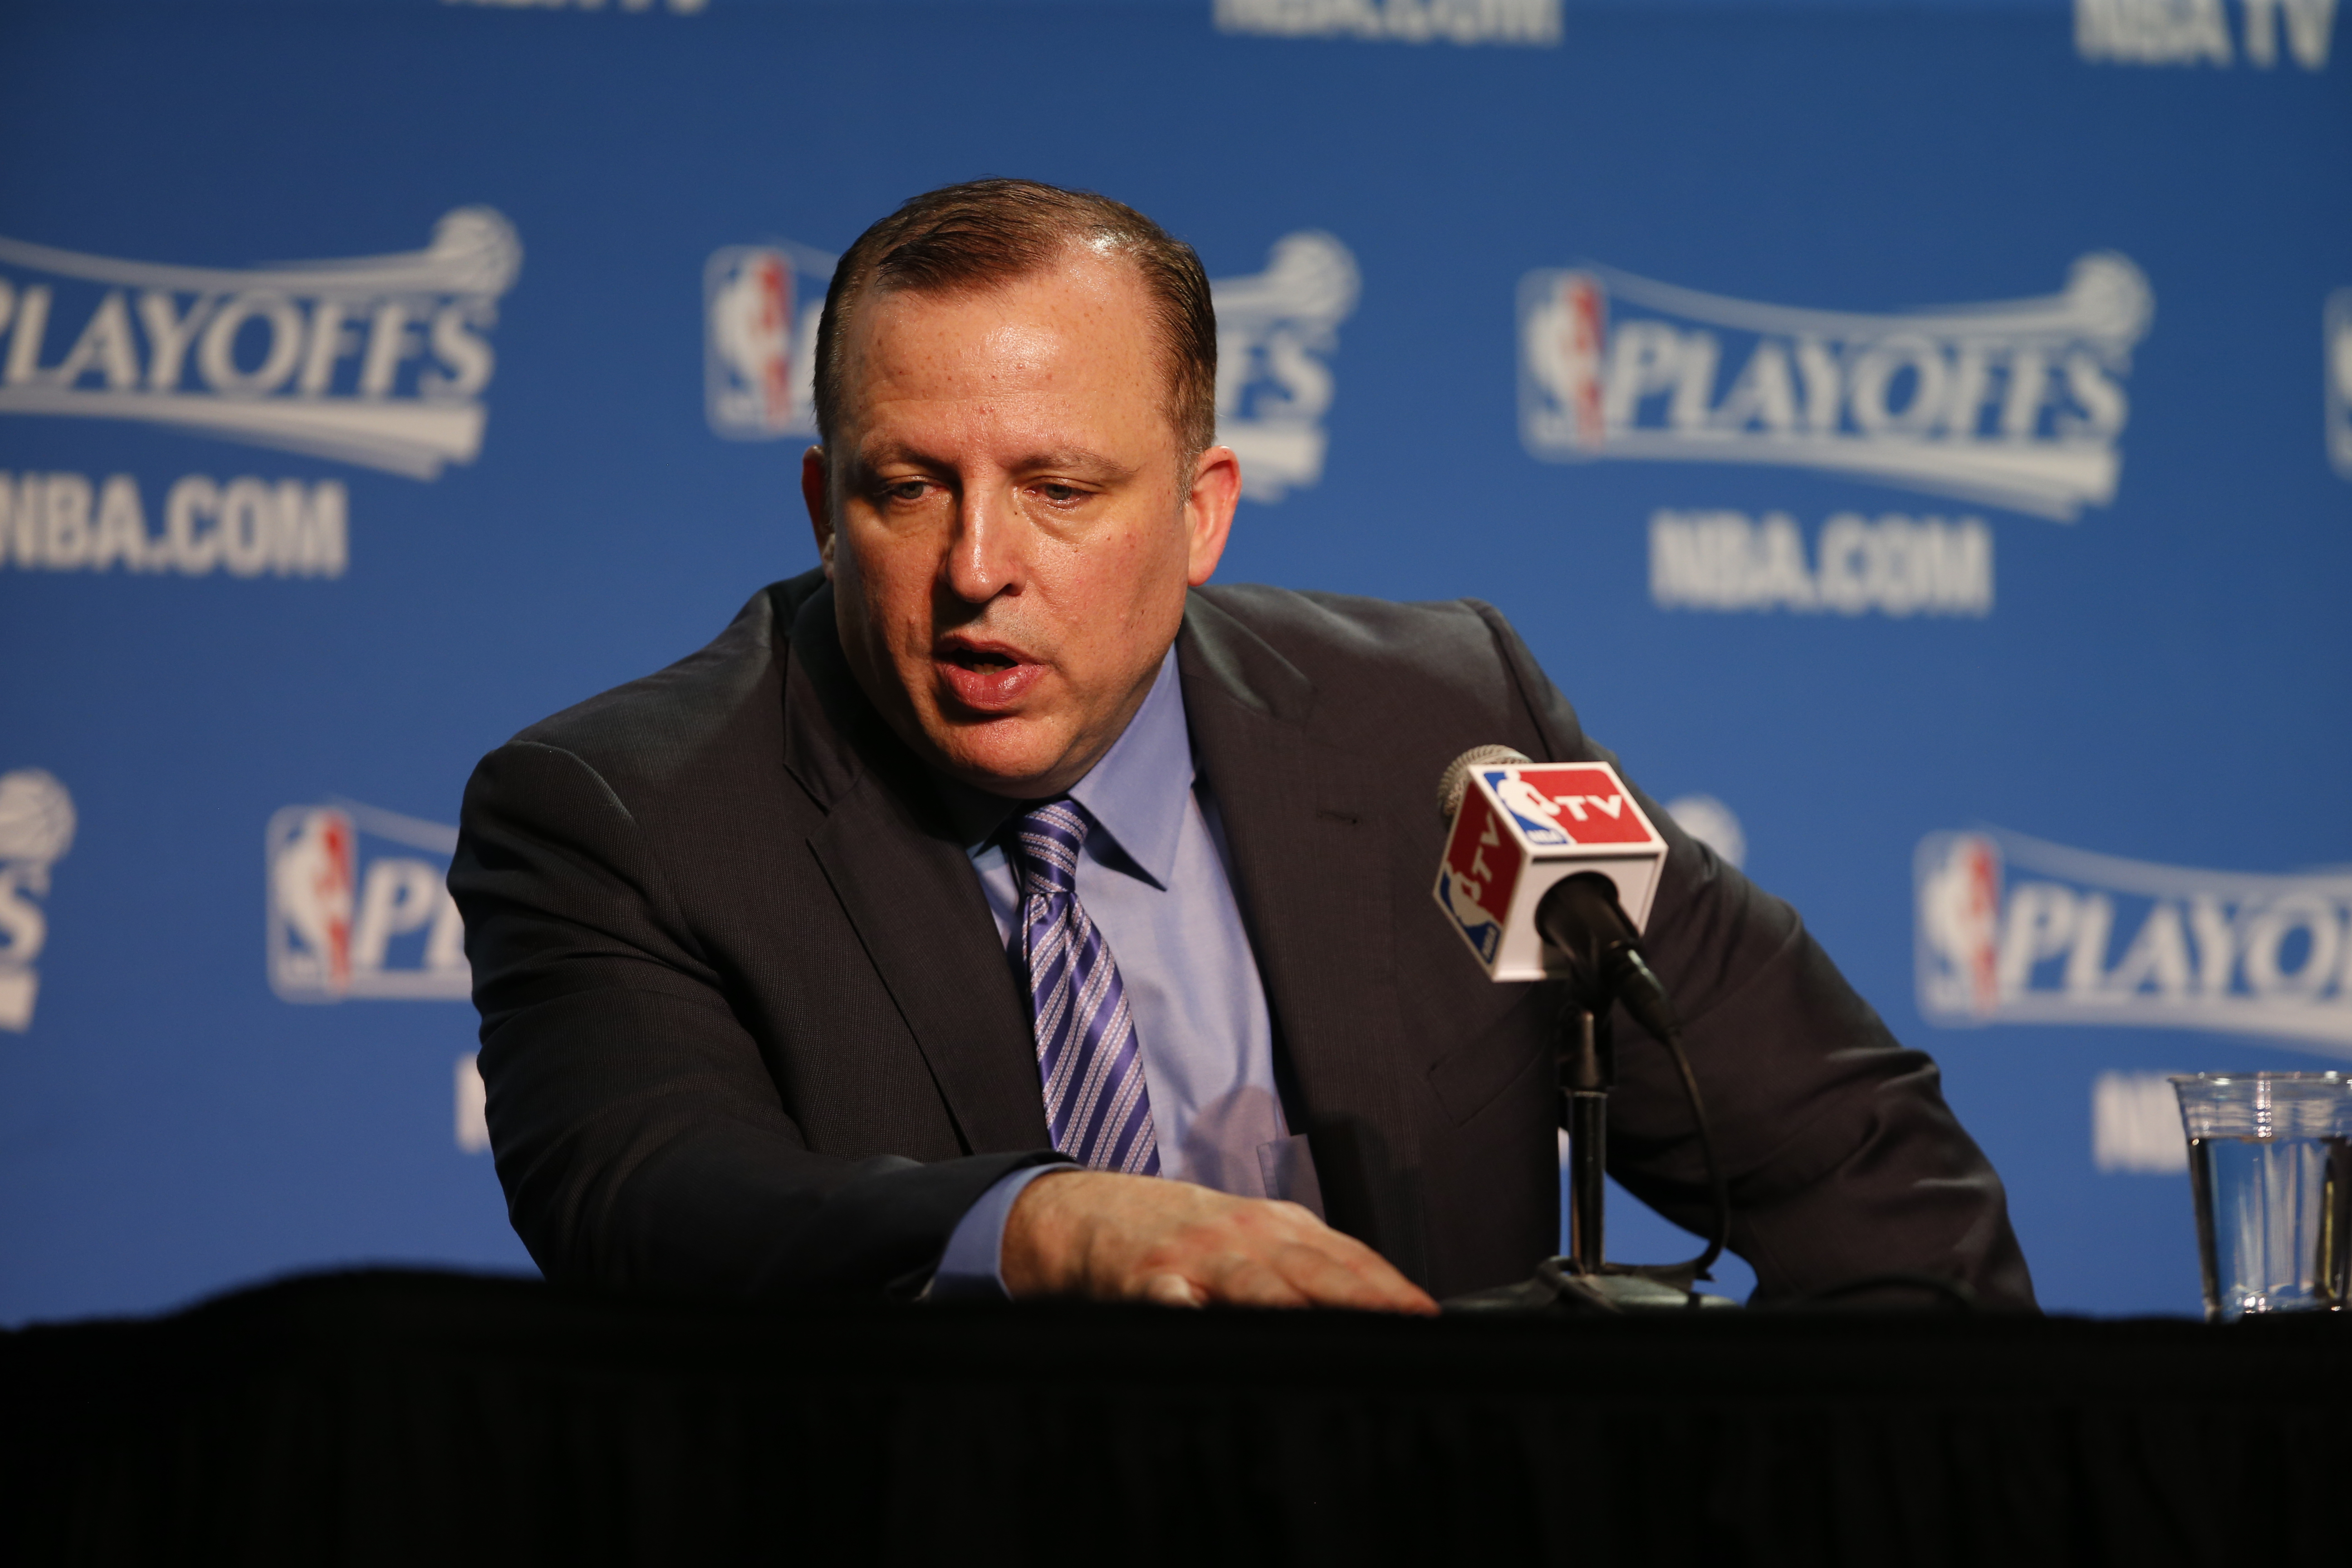 CLEVELAND, OH - MAY 12:  Head coach Tom Thibodeau of the Chicago Bulls speaks at the post game press conference after Game Five of the Eastern Conference Semifinals against the Cleveland Cavaliers during the 2015 NBA Playoffs on May 12, 2015 at The Quicke